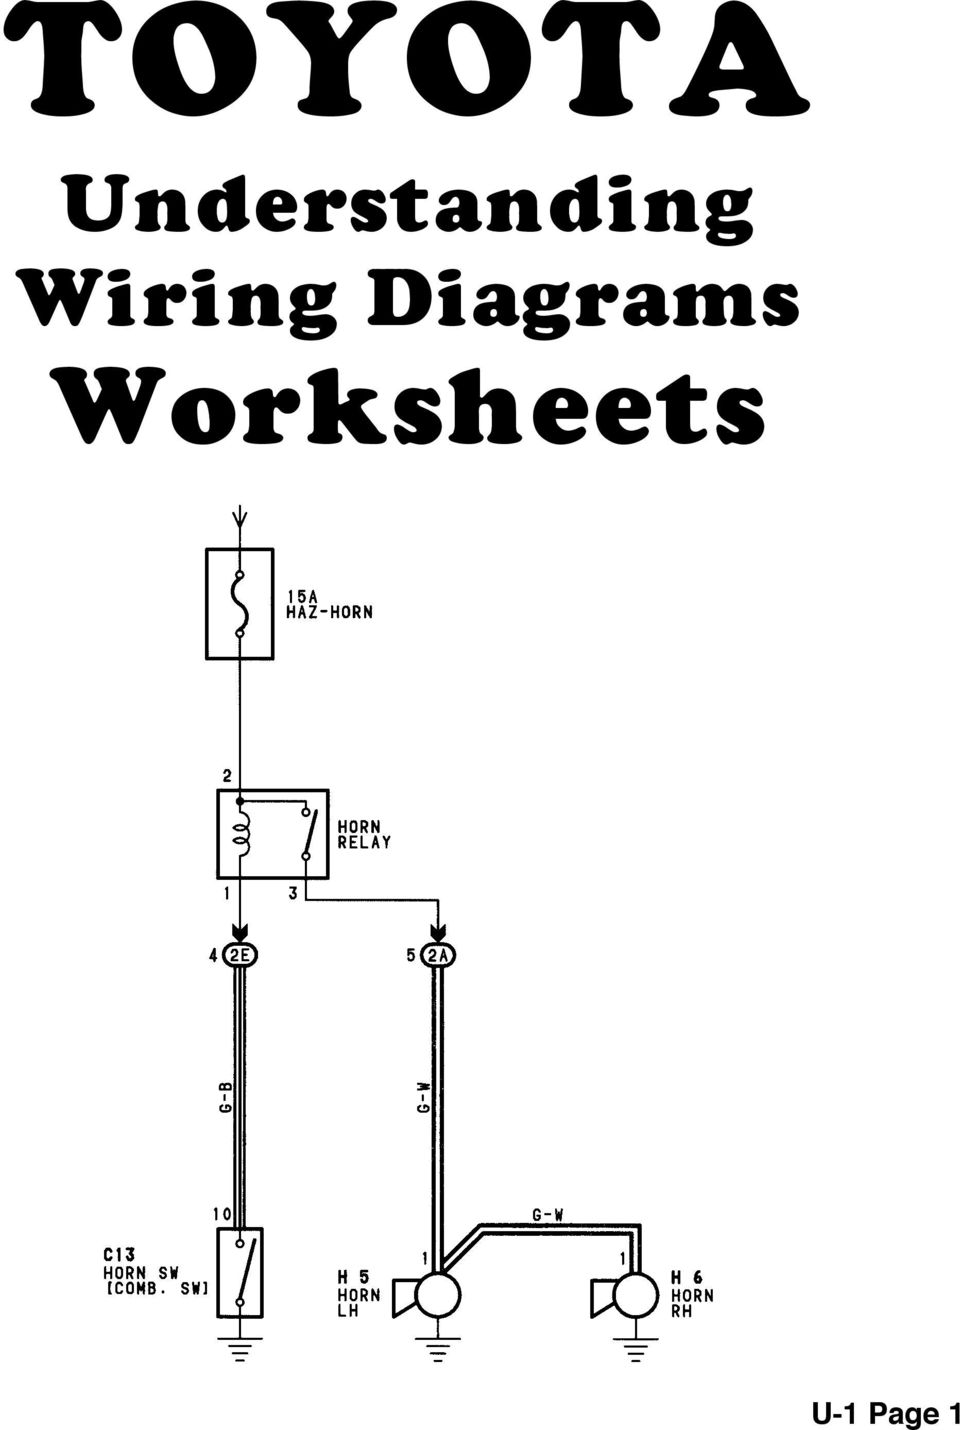 medium resolution of 4 understanding toyota wiring diagrams information 1 reading toyota electrical wiring diagrams u 1 page 2